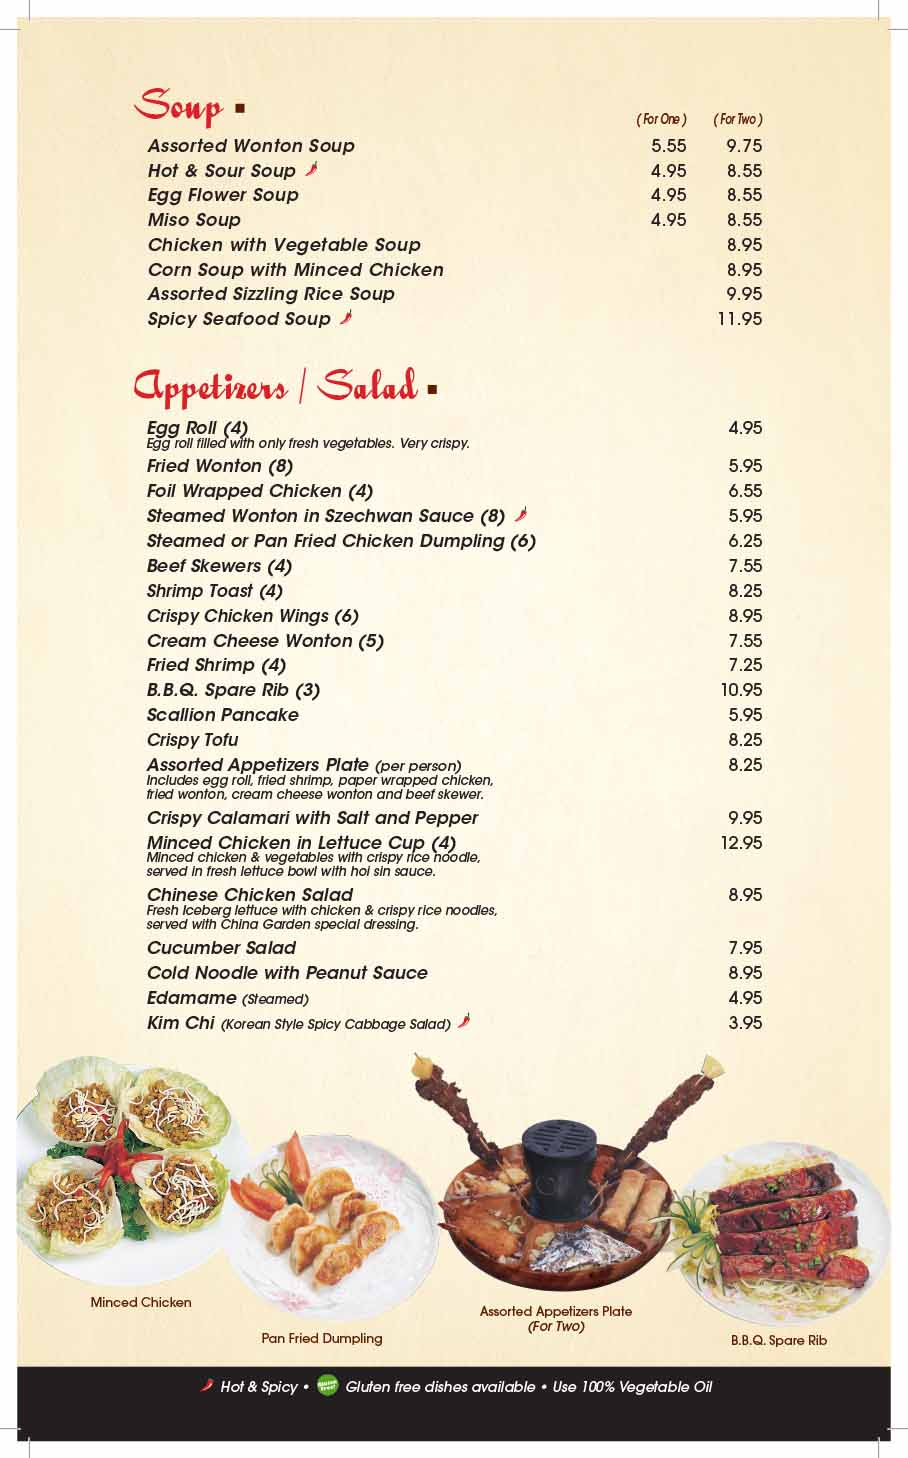 China Garden Restaurant Fine Dining And Authentic Chinese Cuisine In Woodland Hills Los Angeles